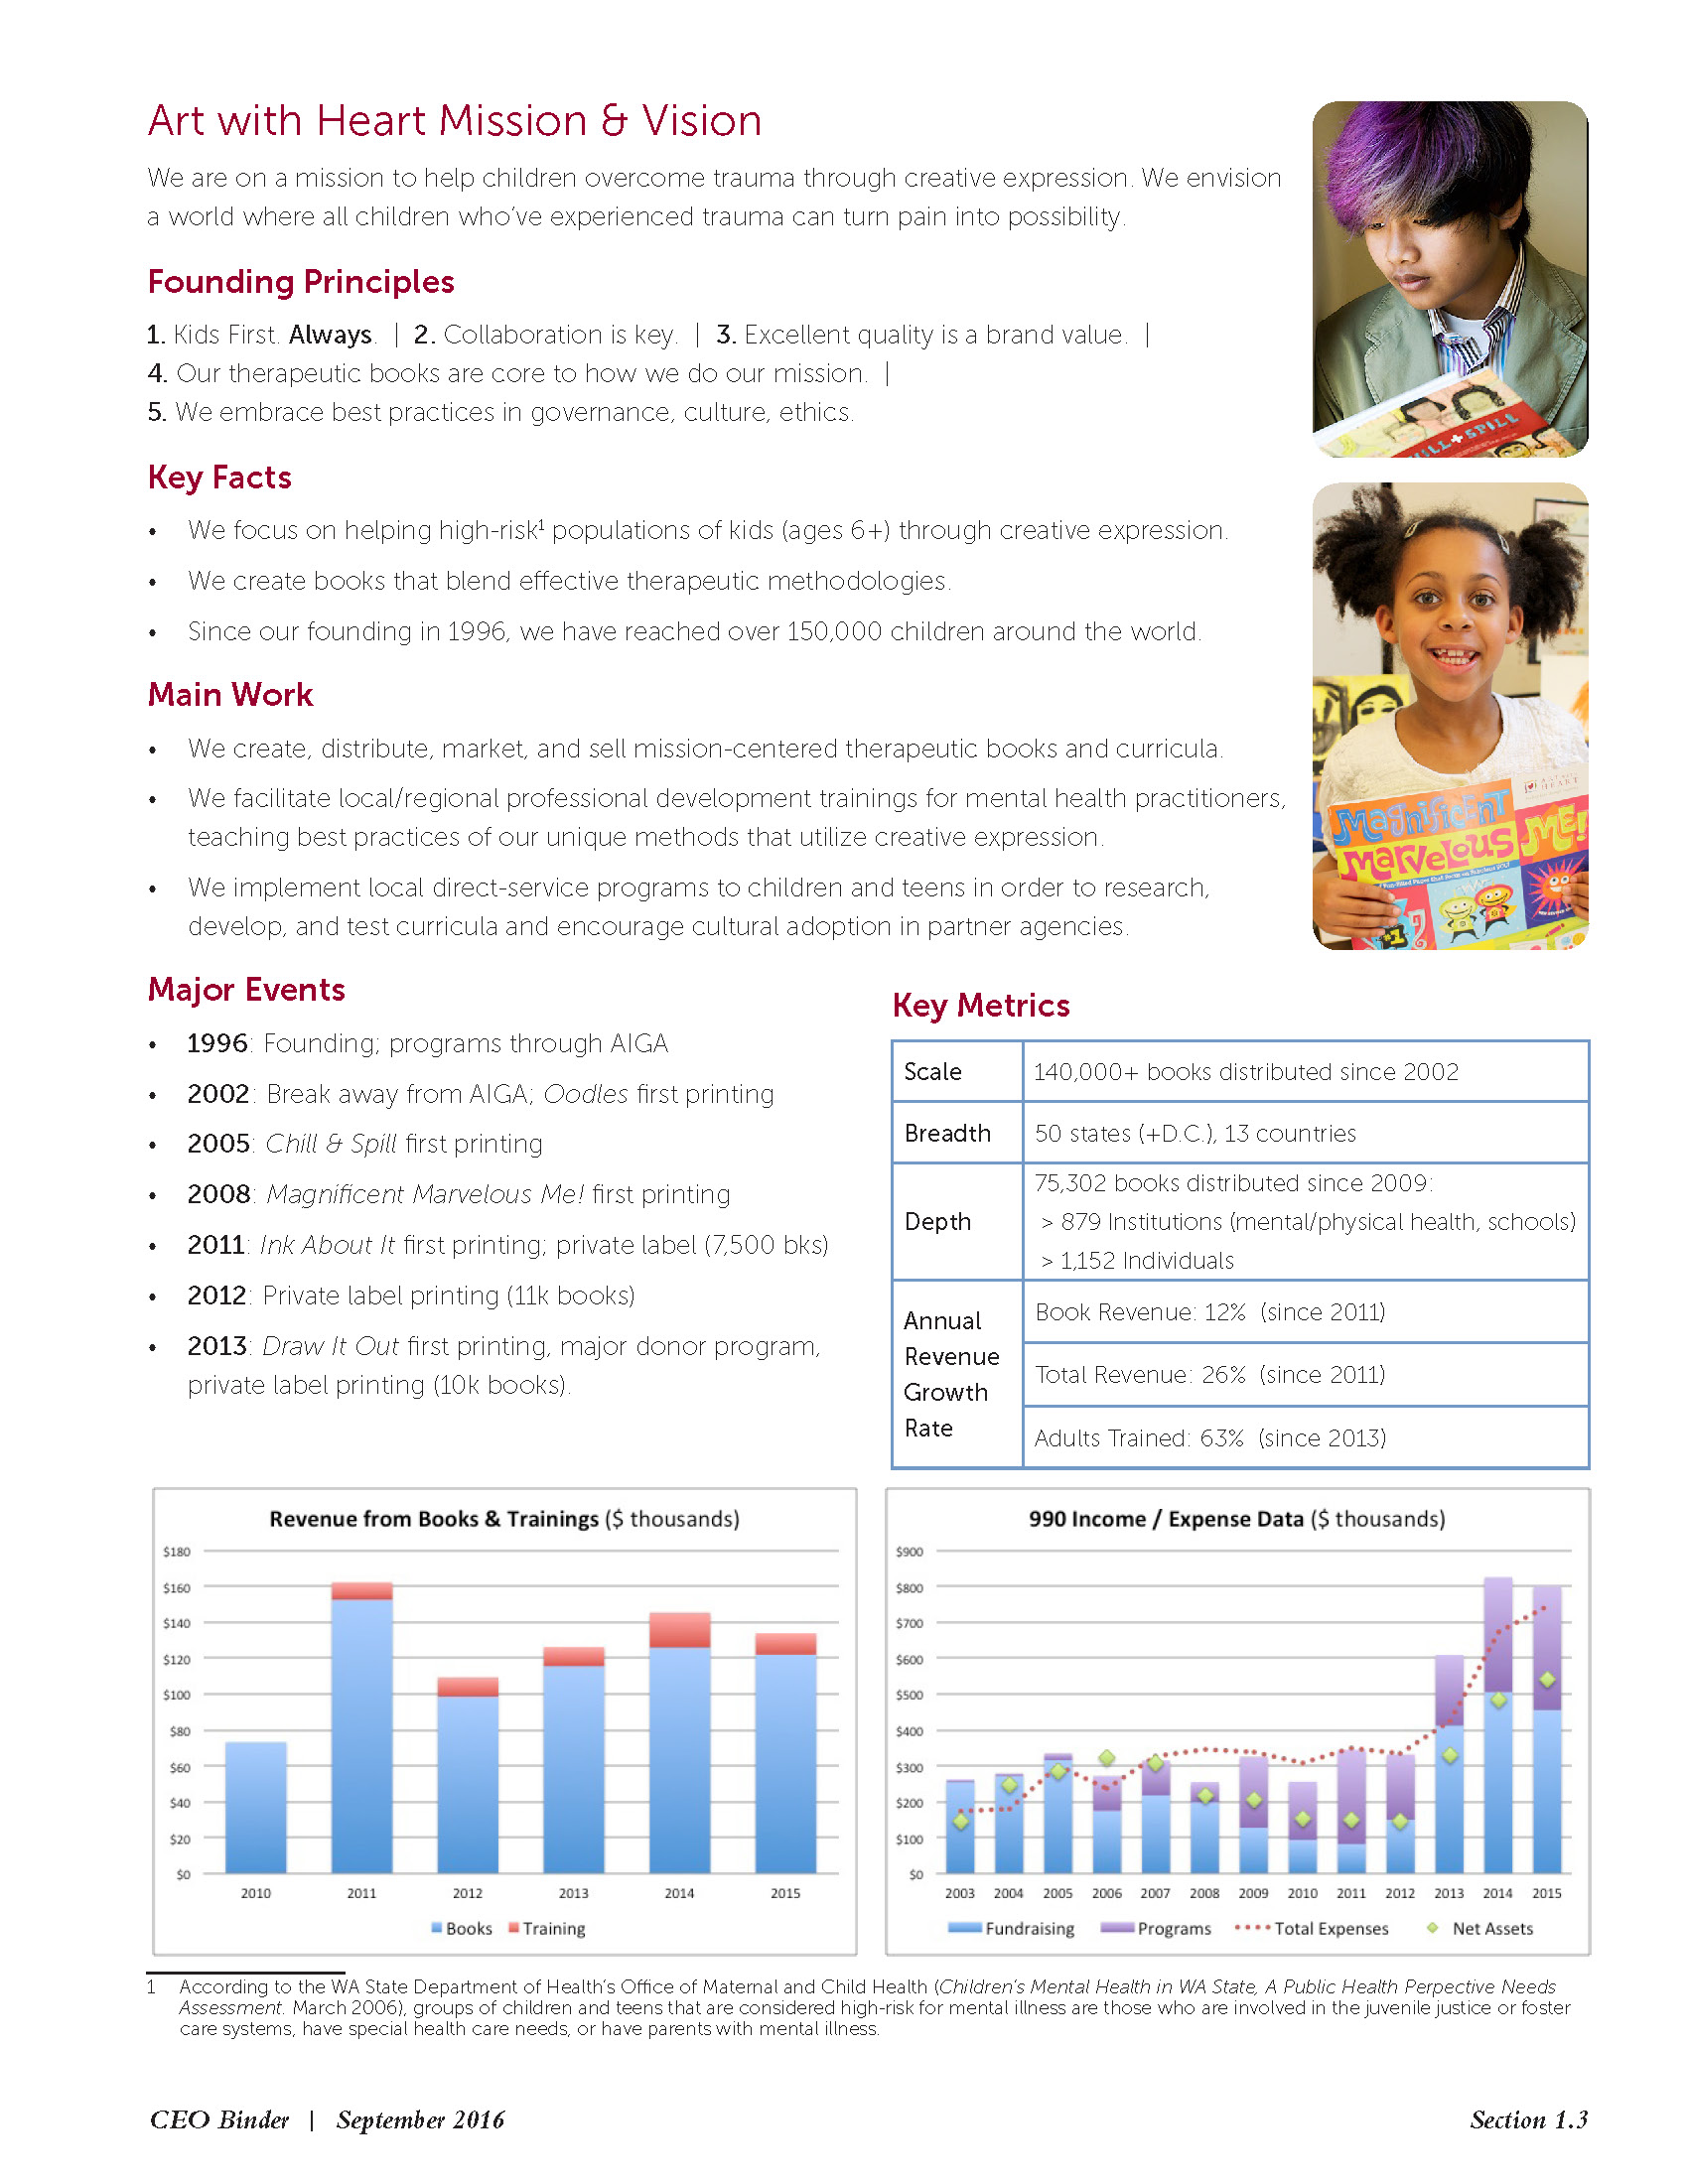 01.03 CEO-missionvision_Page_05_Page_05.jpg